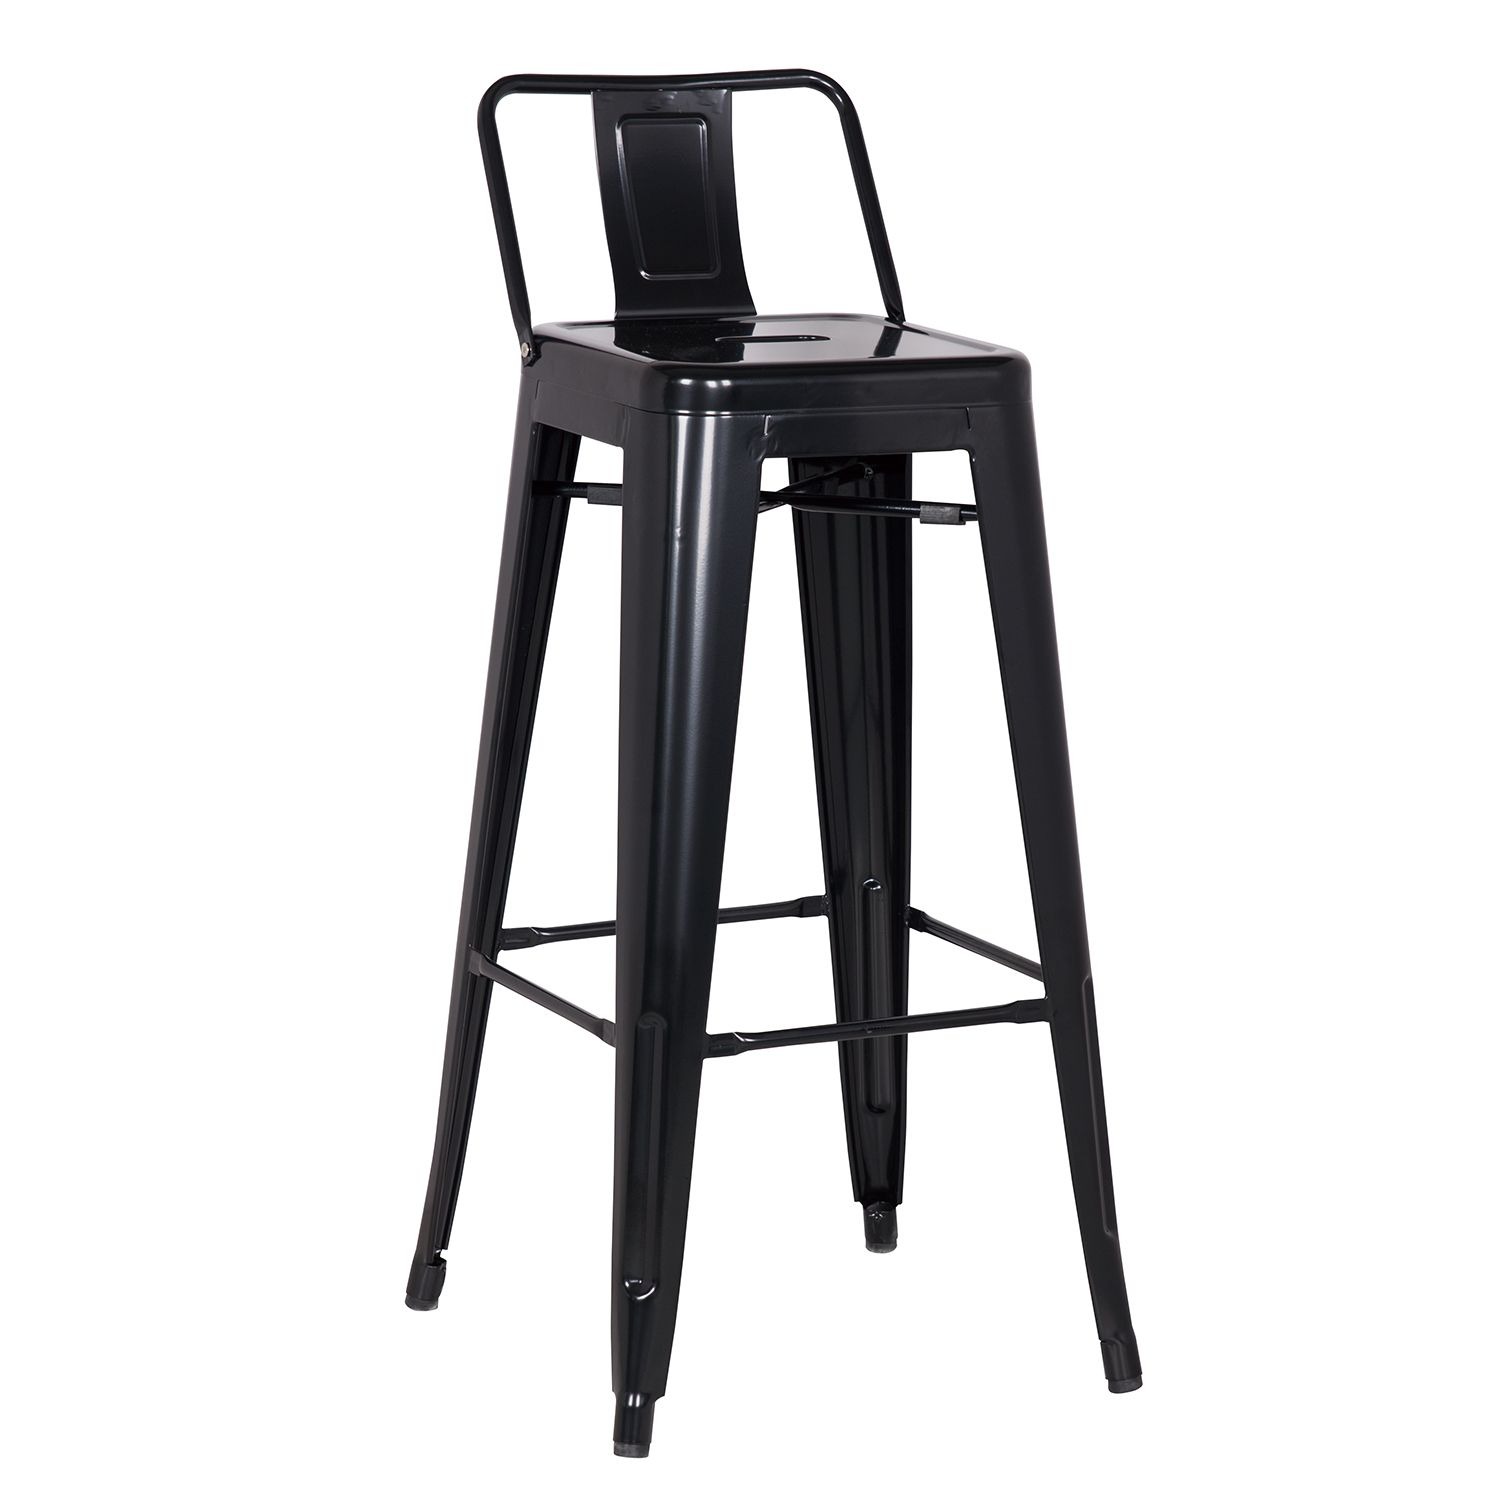 Low Back 24 Inch Height Chair Stool Counter Height Stools Black